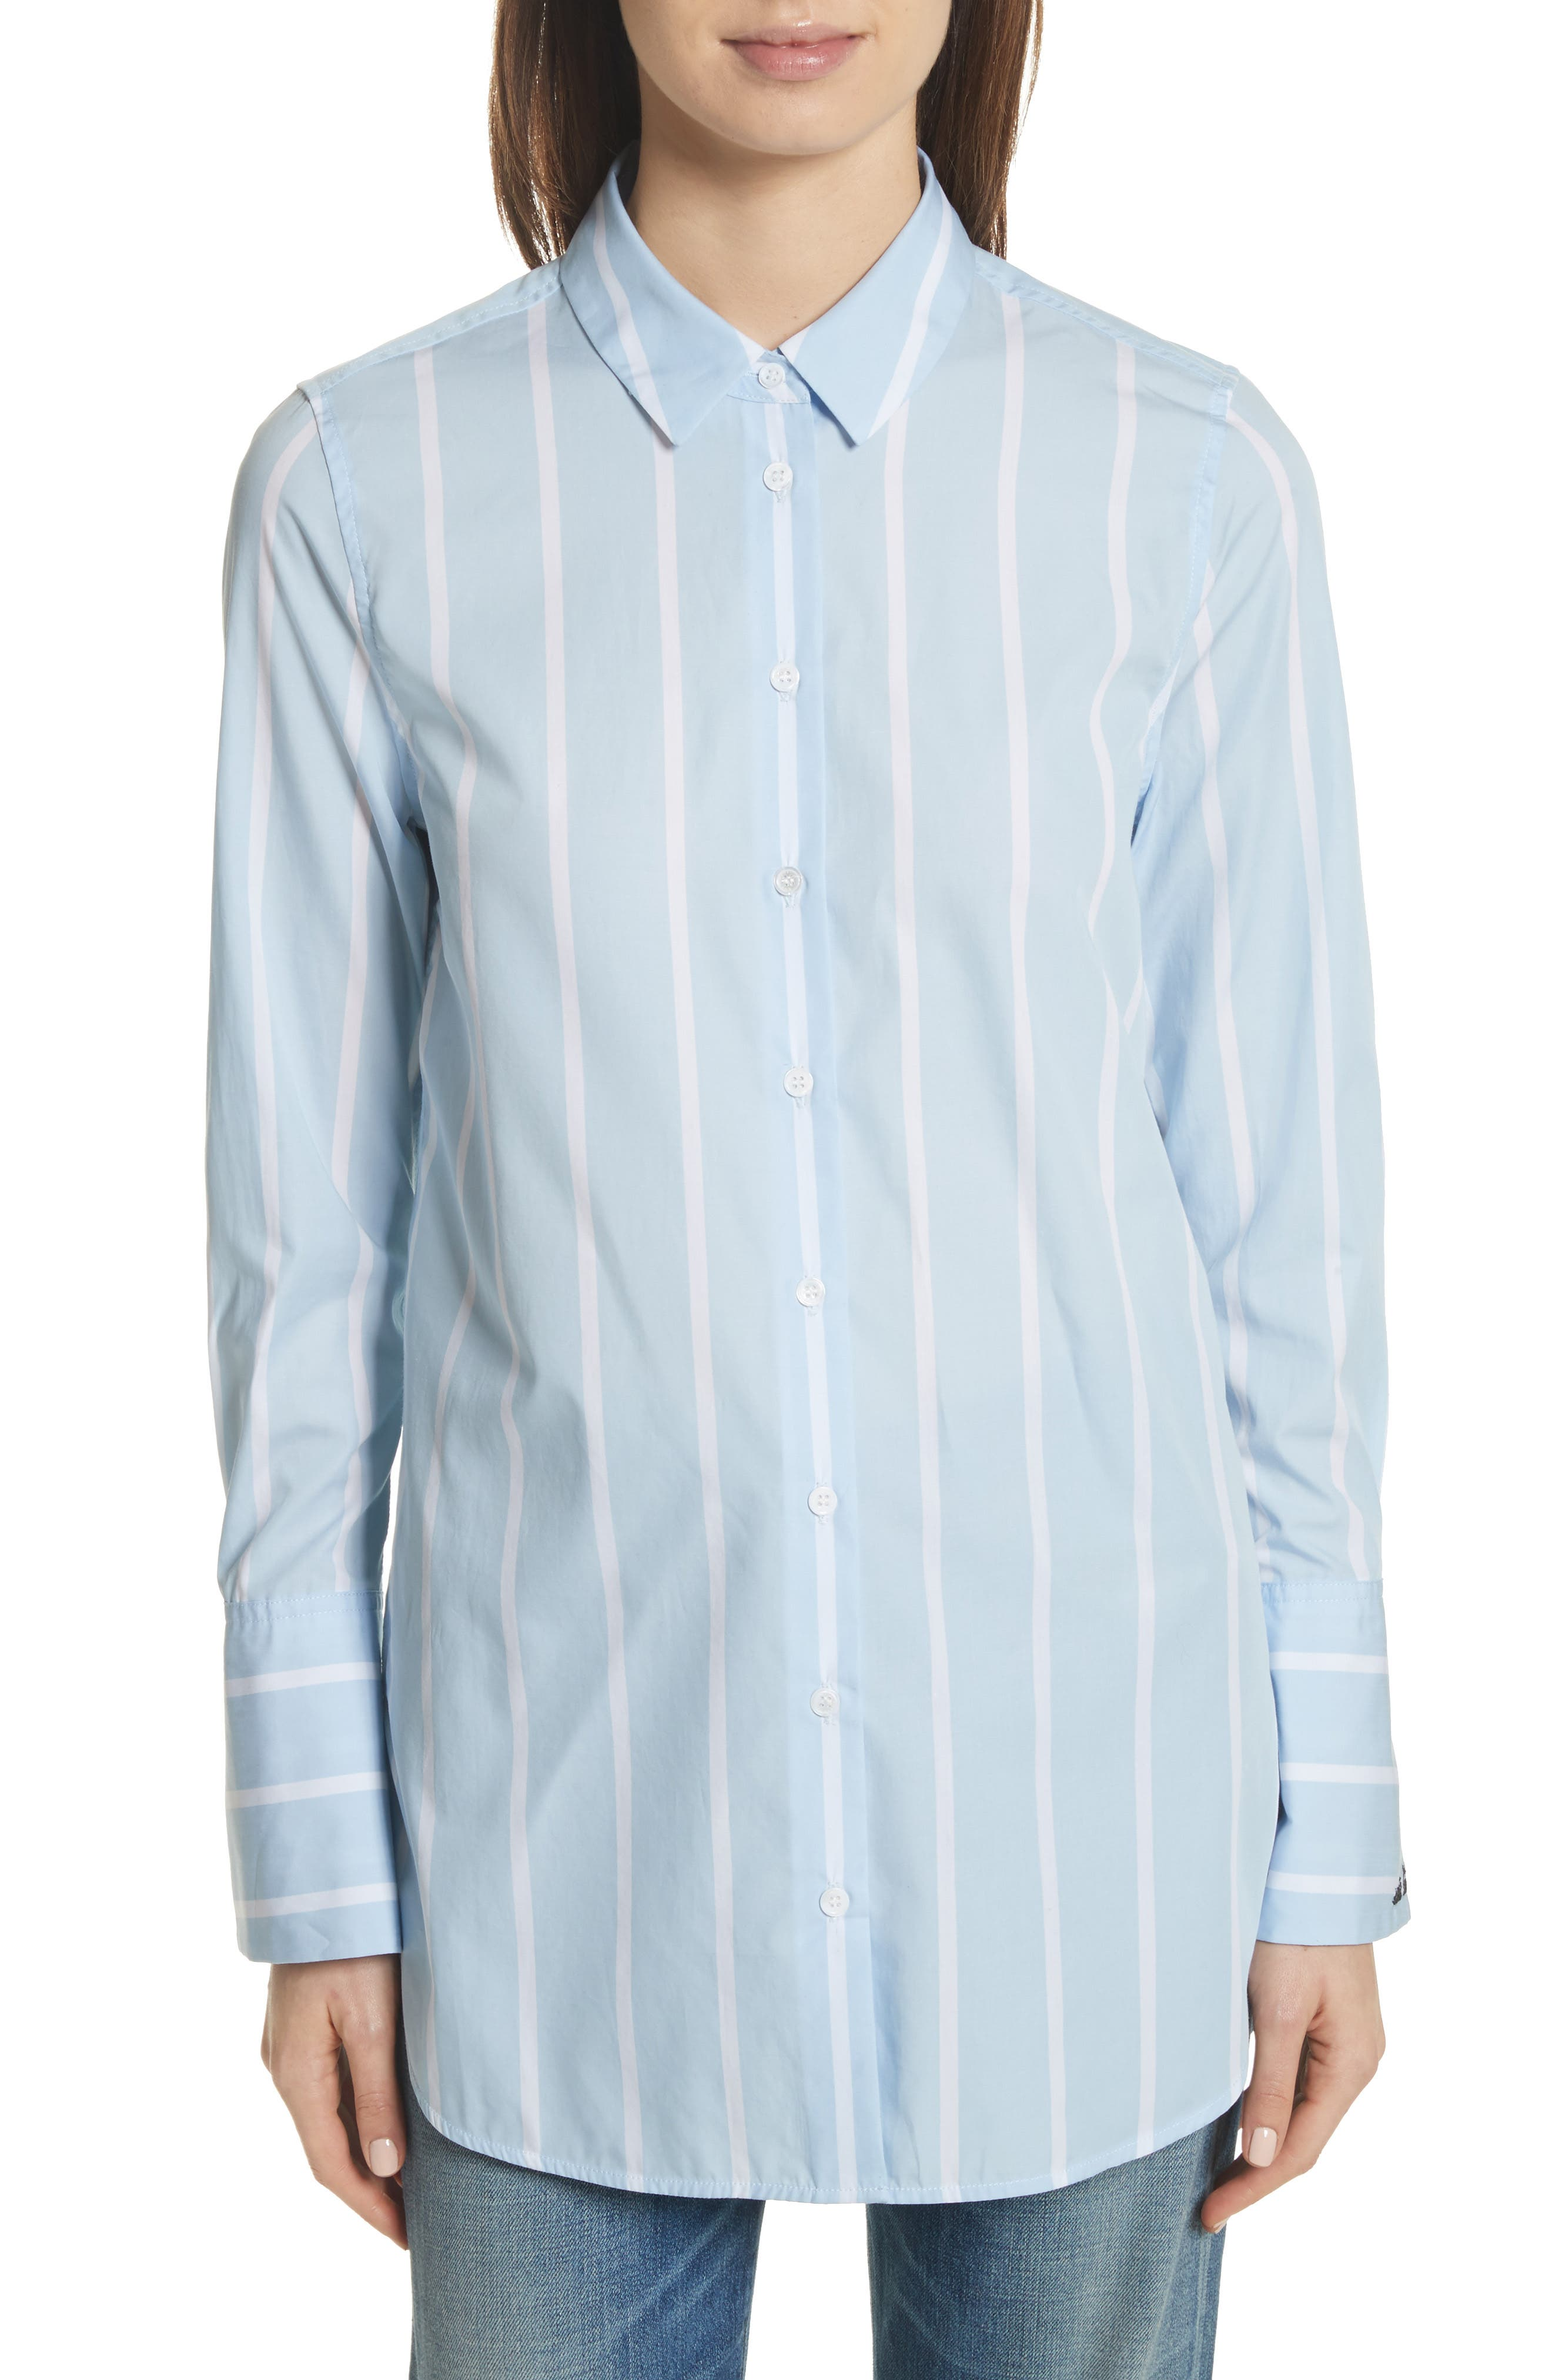 Main Image - Equipment Arlette Stripe Cotton Shirt